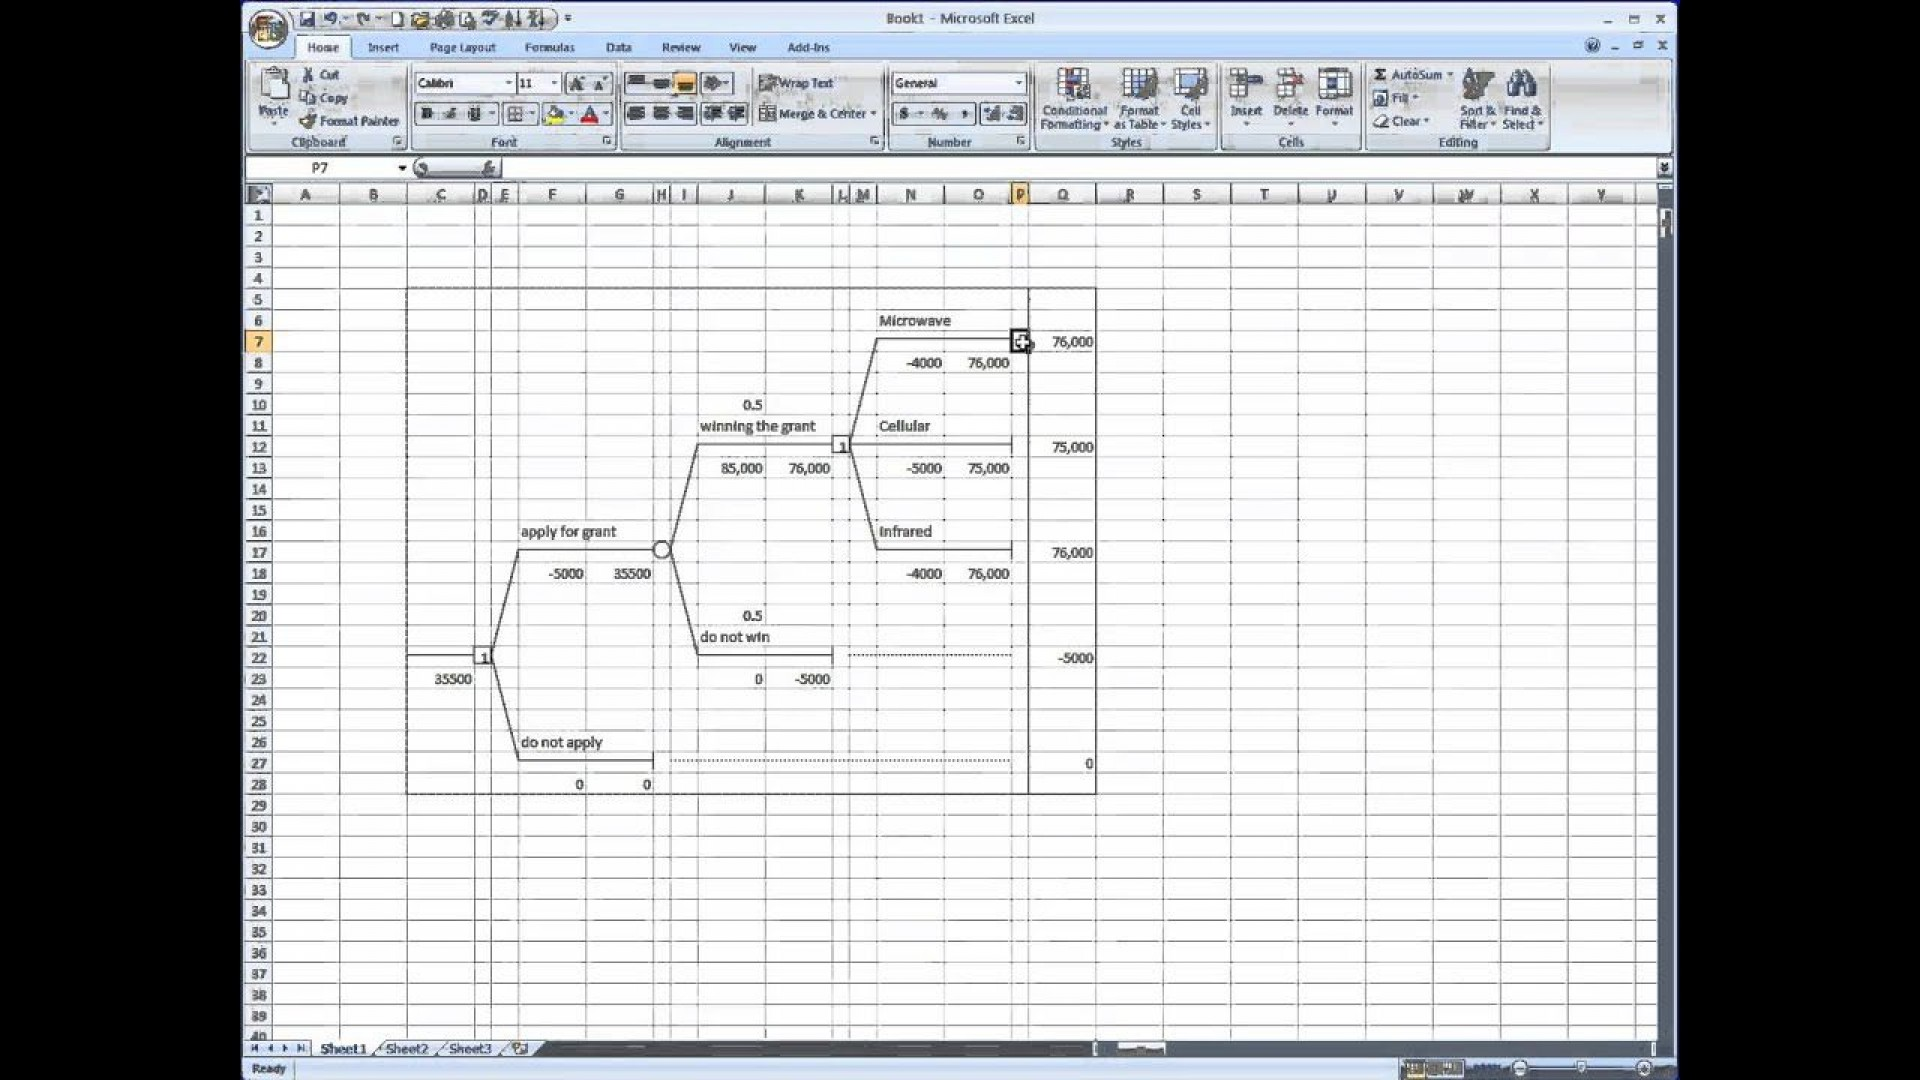 007 Surprising Decision Tree Template Excel 2016 High Resolution 1920